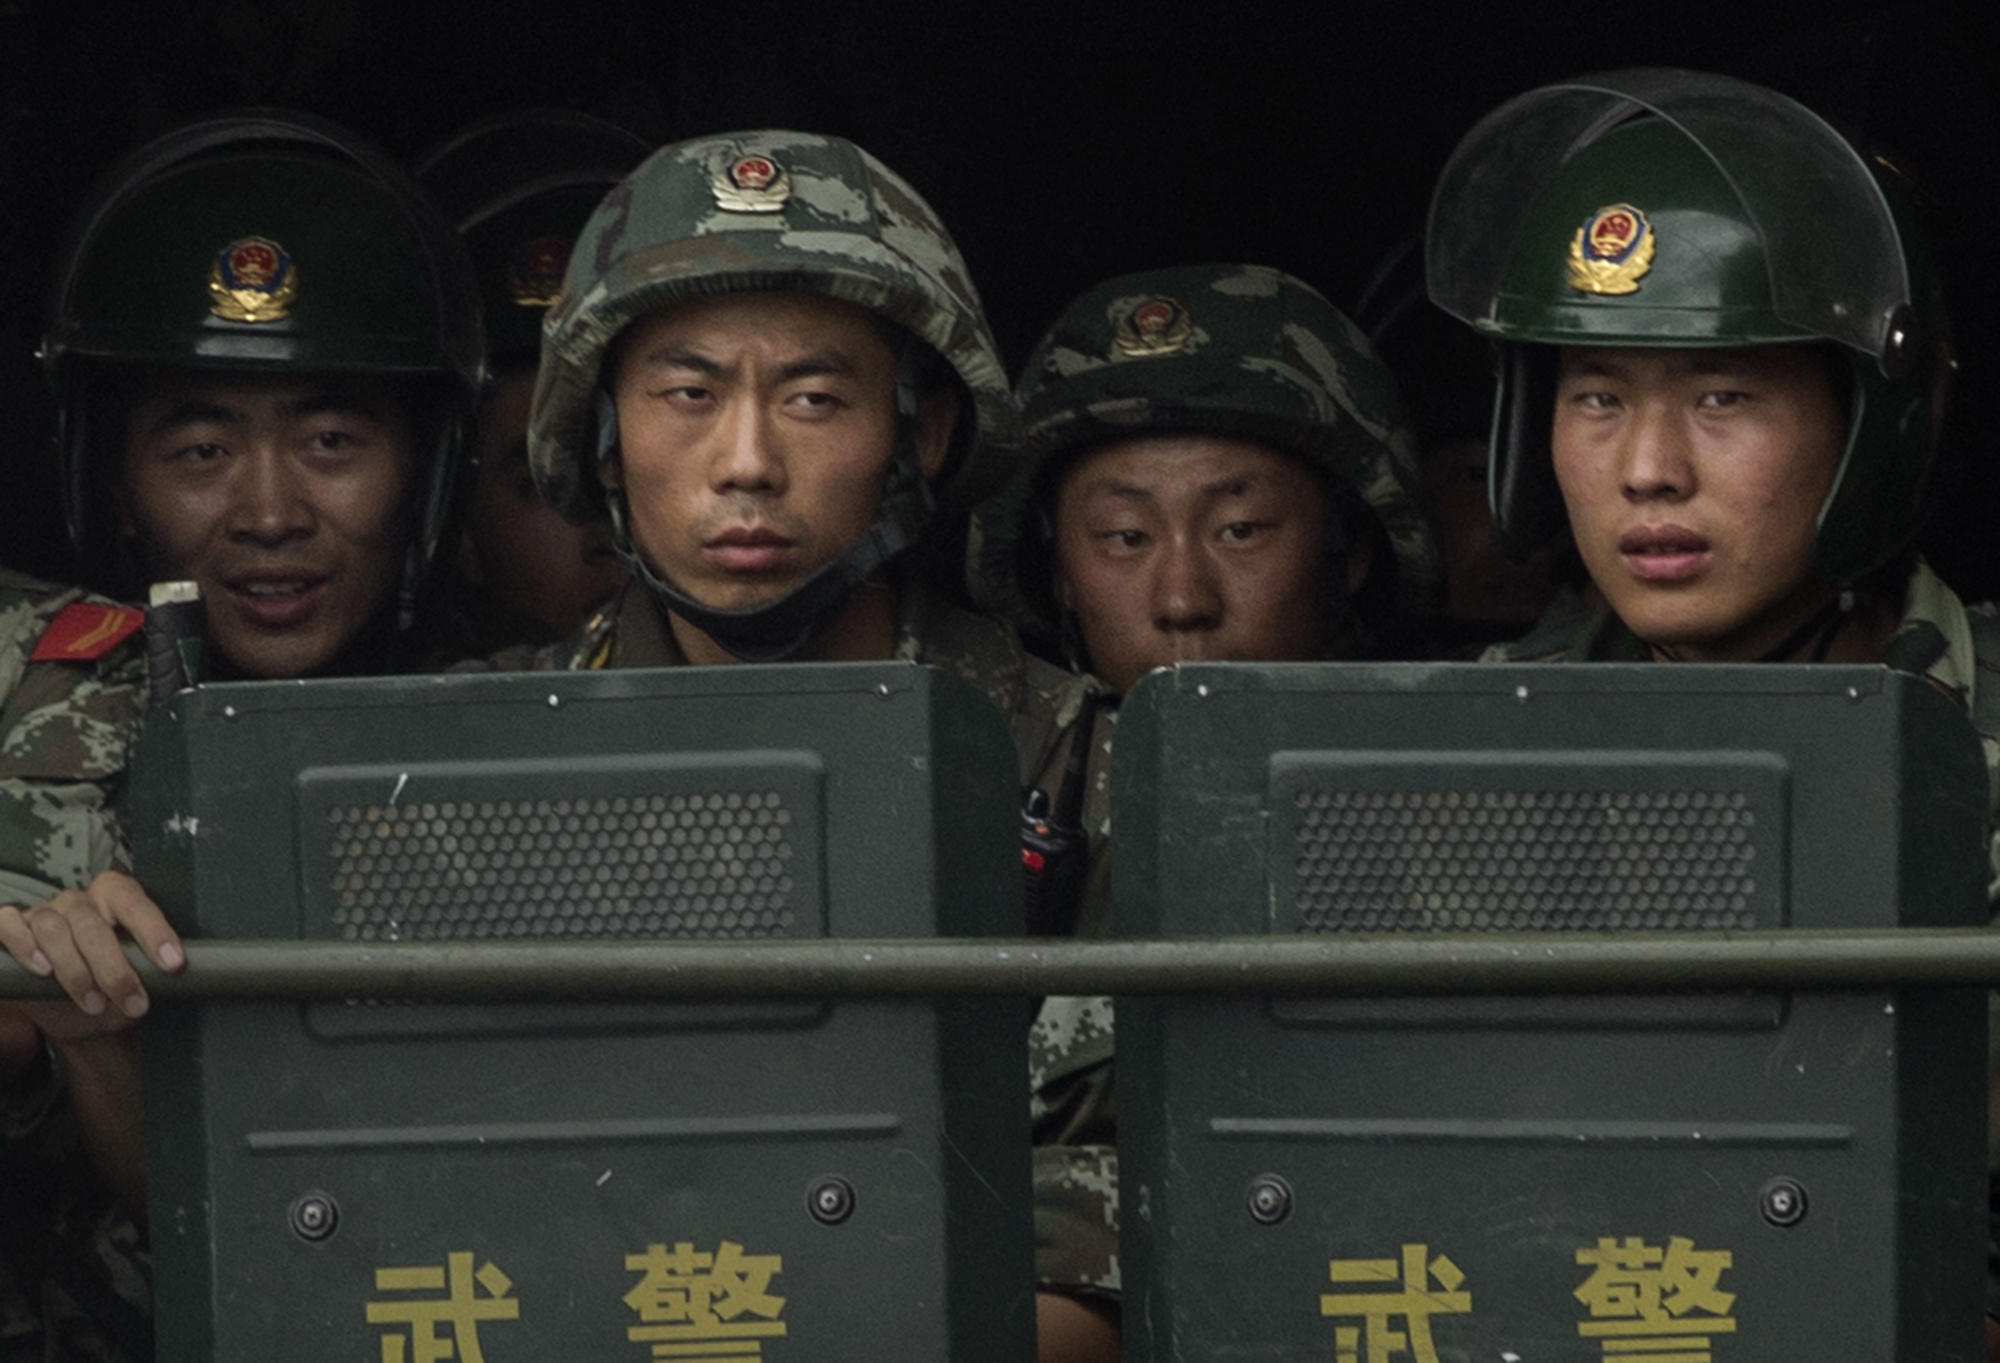 Chinese soldiers ride on the back of a truck as they patrol outside the Id Kah Mosque, China's largest, on July 31, 2014 in Kashgar, China.